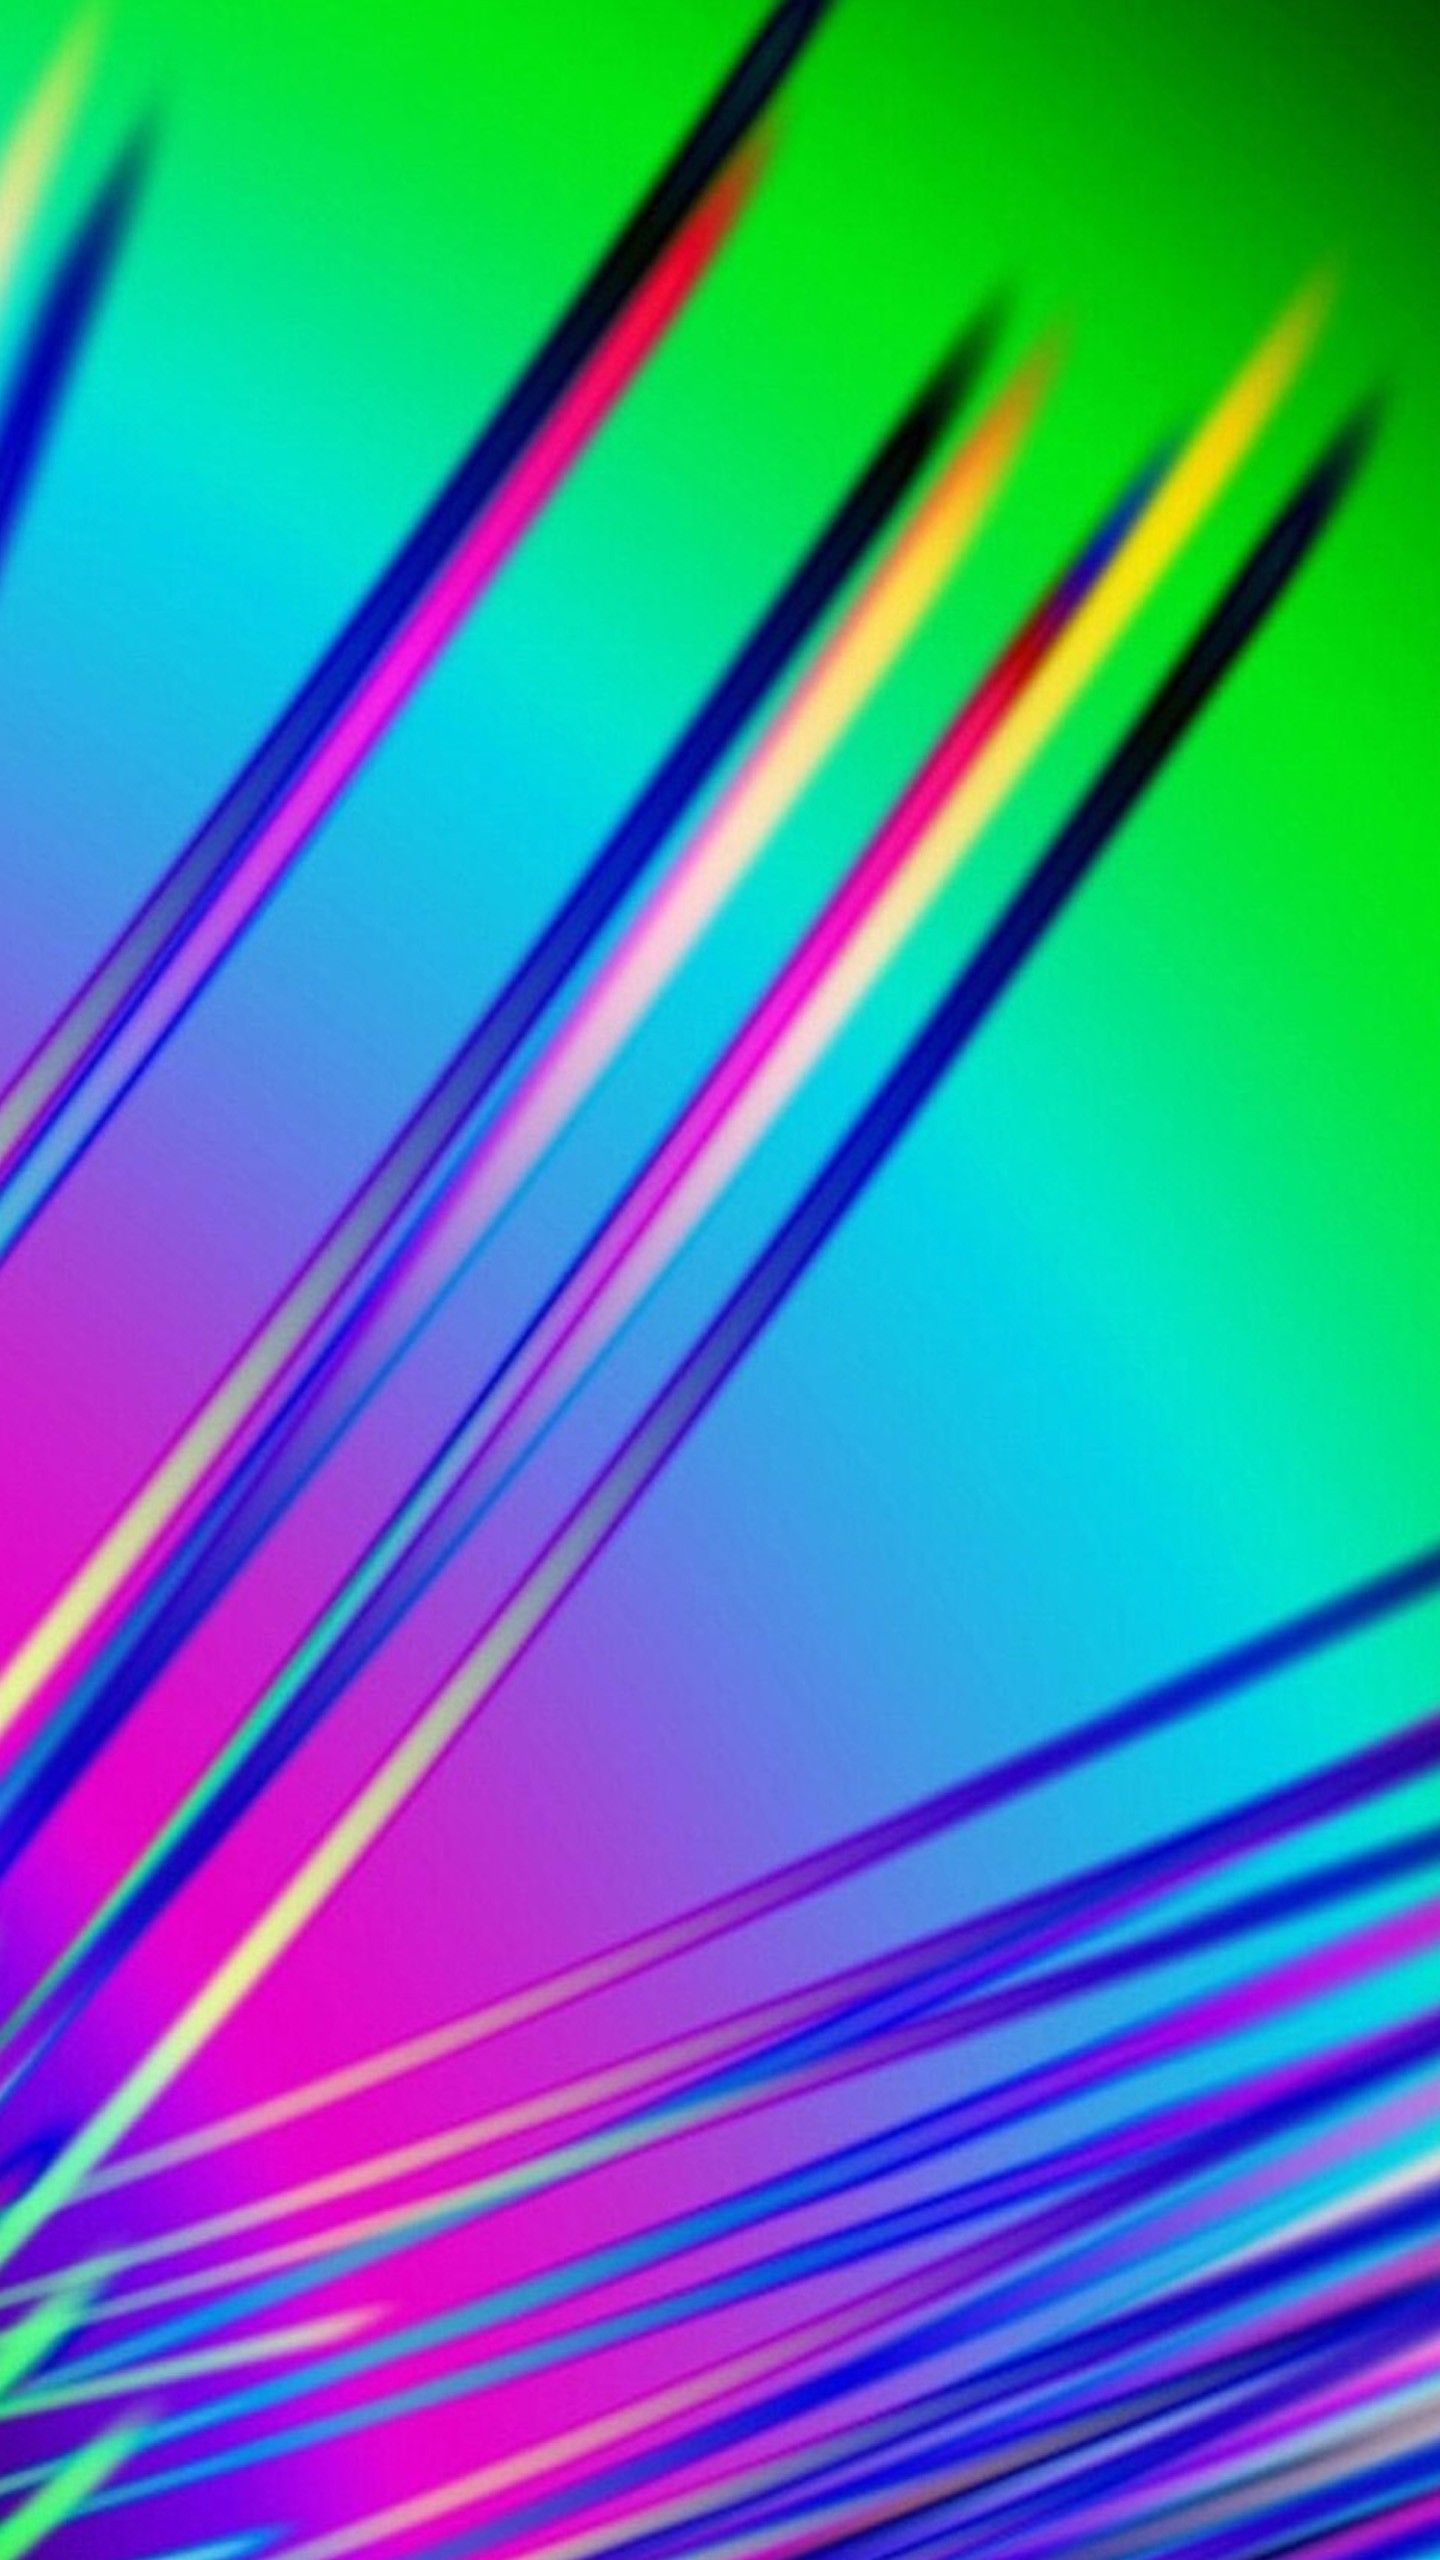 Samsung Galaxy S6 Wallpapers Top Free Samsung Galaxy S6 Backgrounds Wallpaperaccess